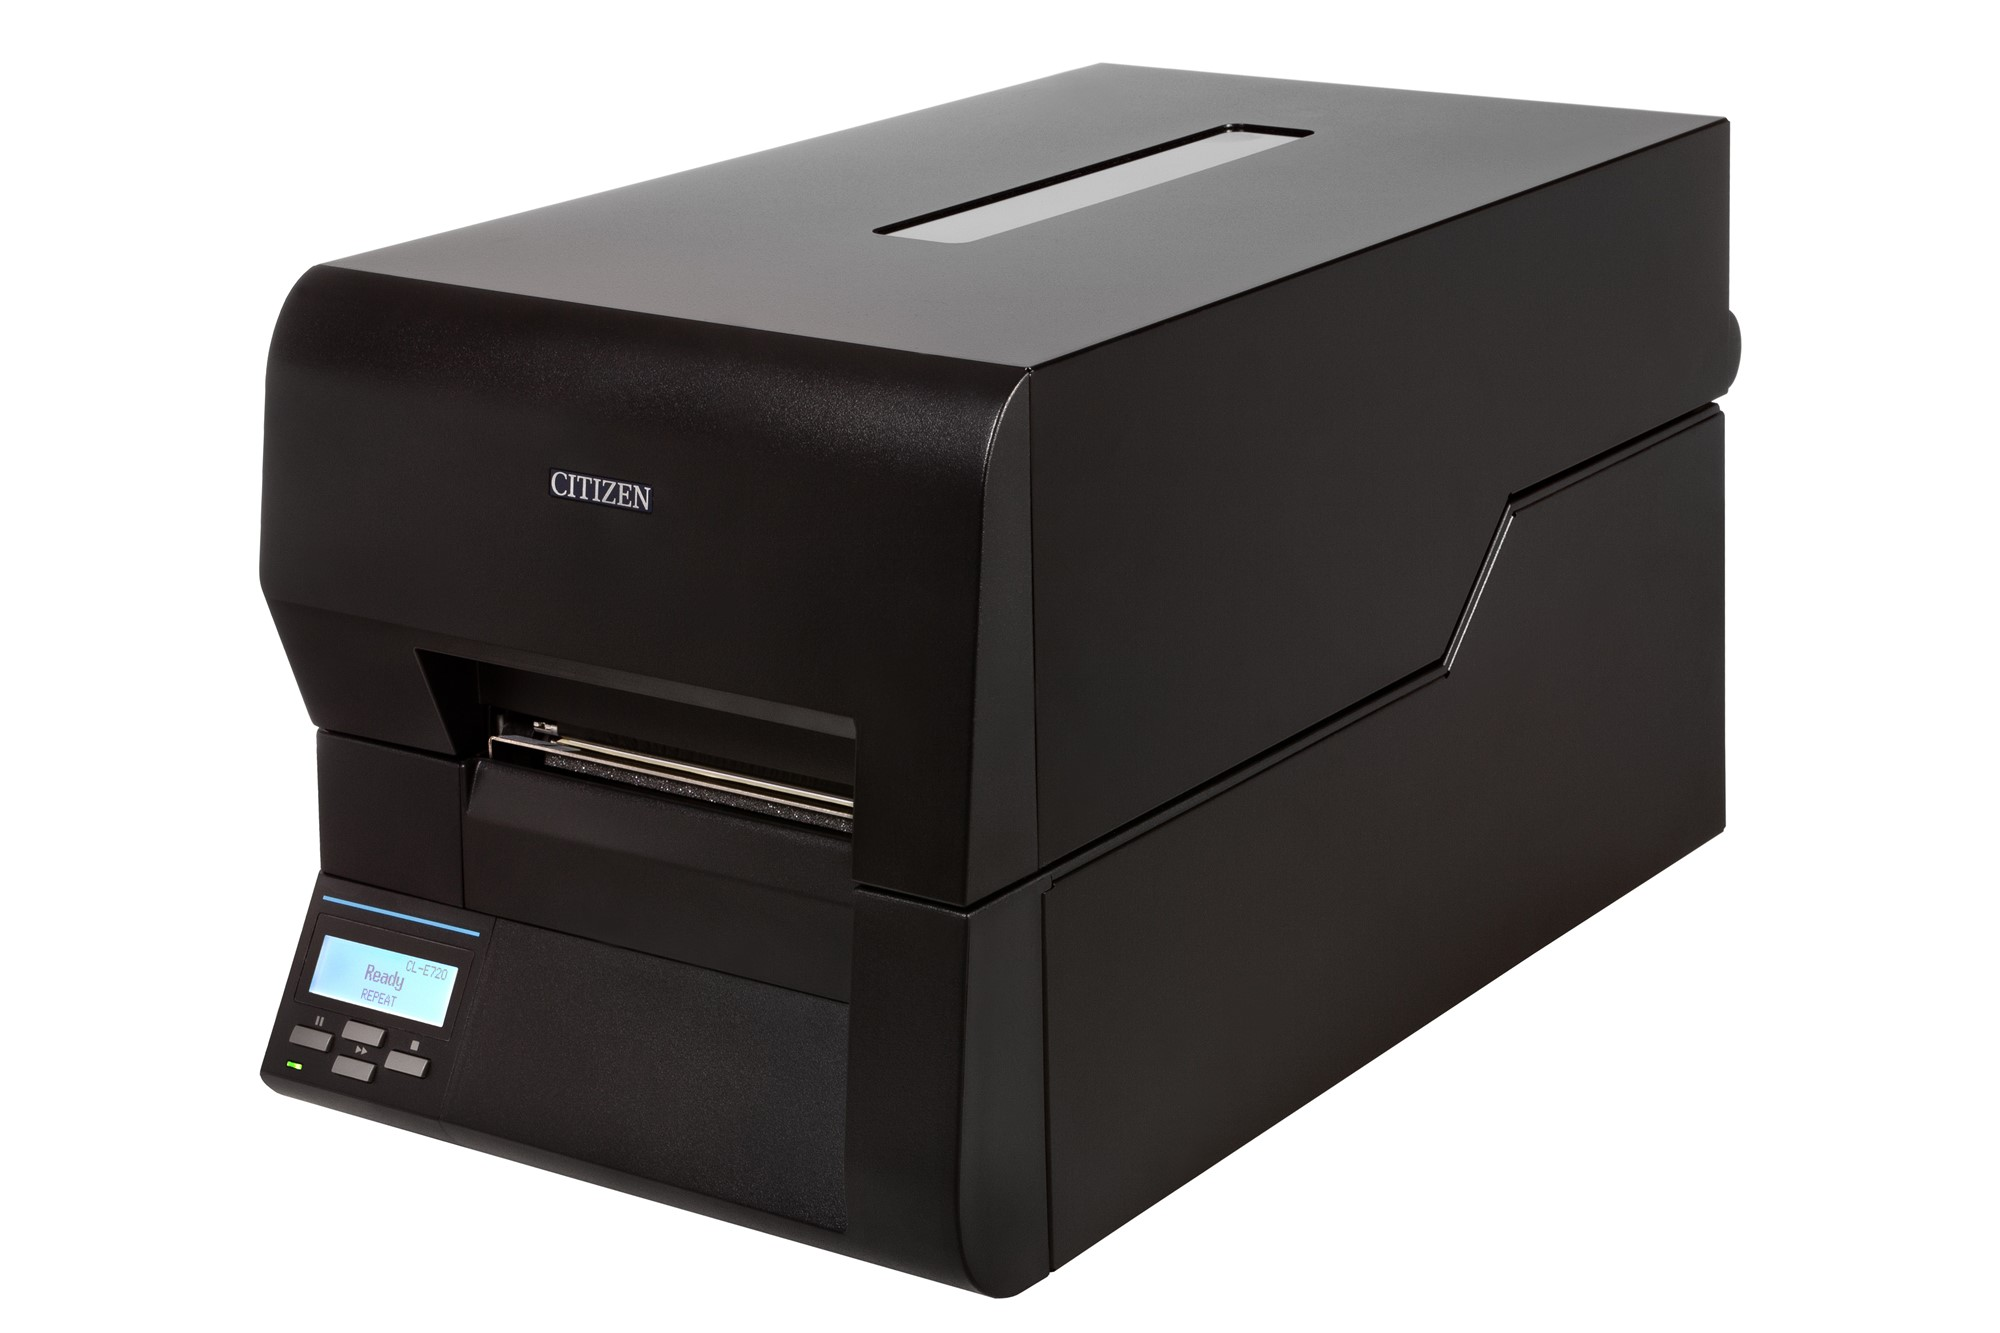 CITIZEN 1000854 CL-E730 DIRECT THERMAL / TRANSFER 300 X 300DPI LABEL PRINTER